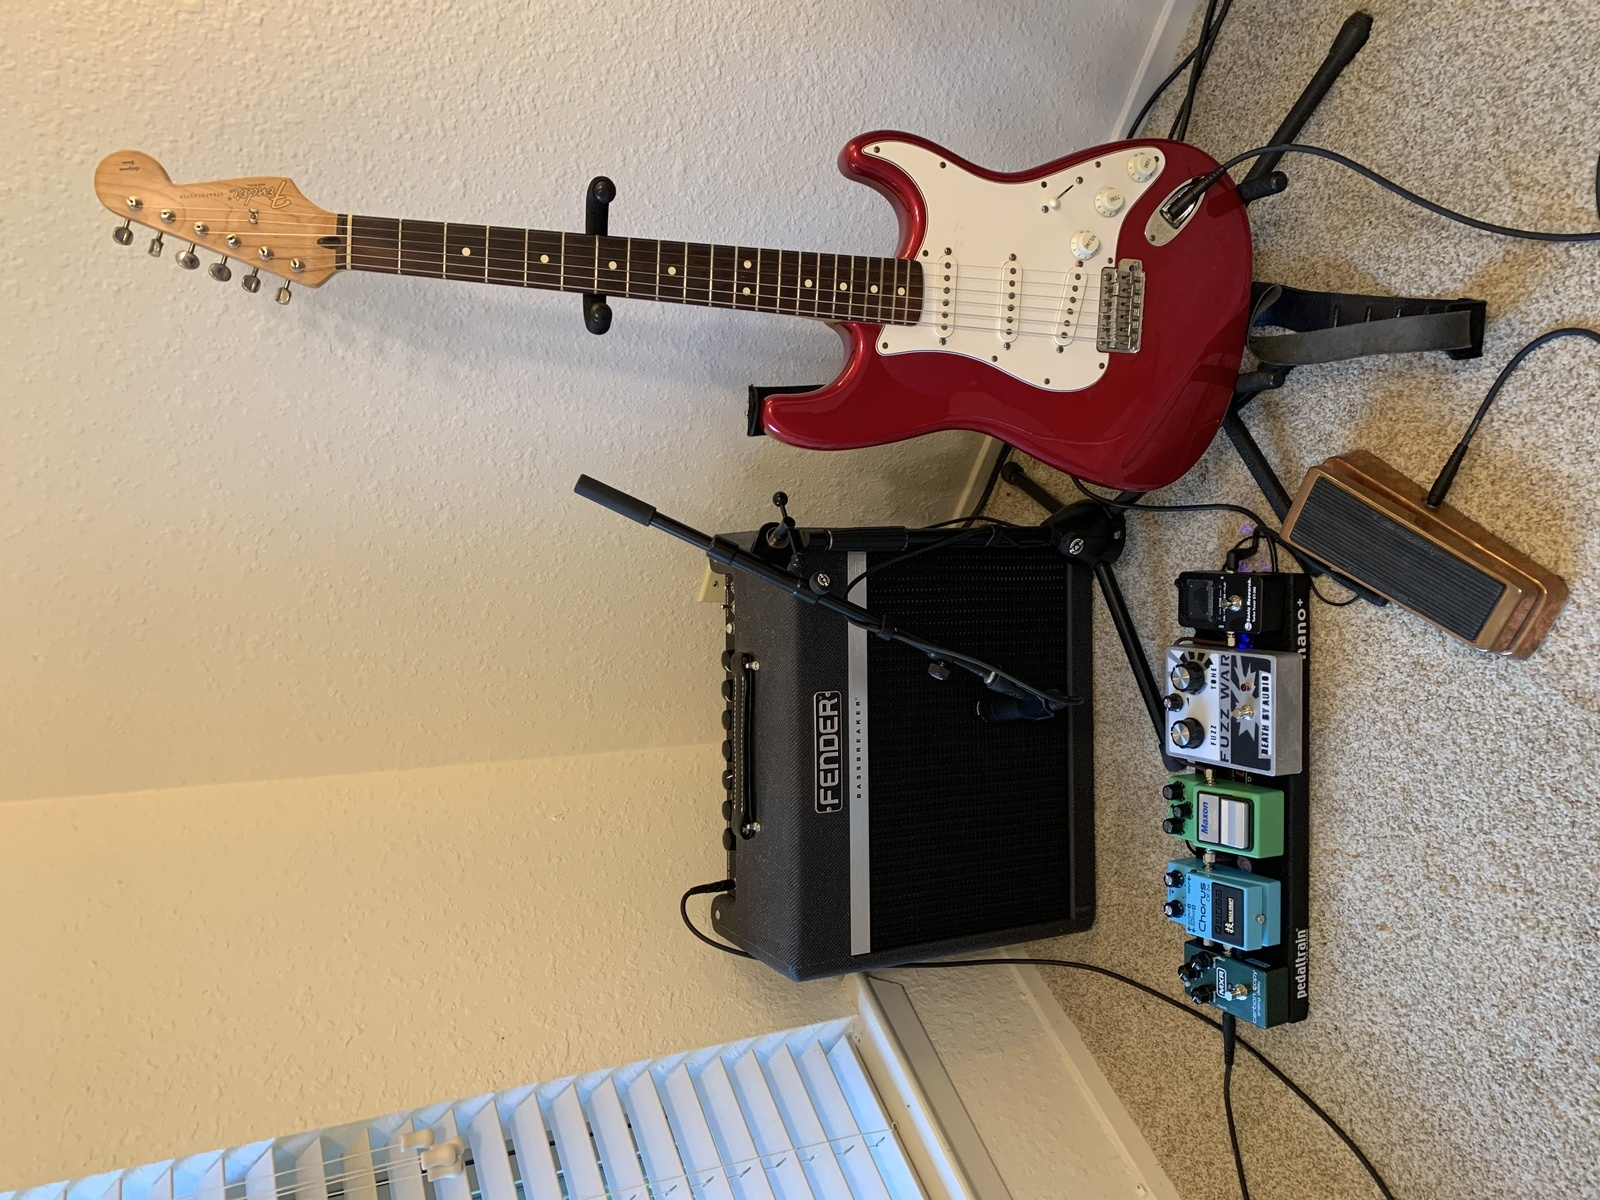 Photo of Death By Audio Fuzz War and more gear in a pedalboard, guitar, and signal chain